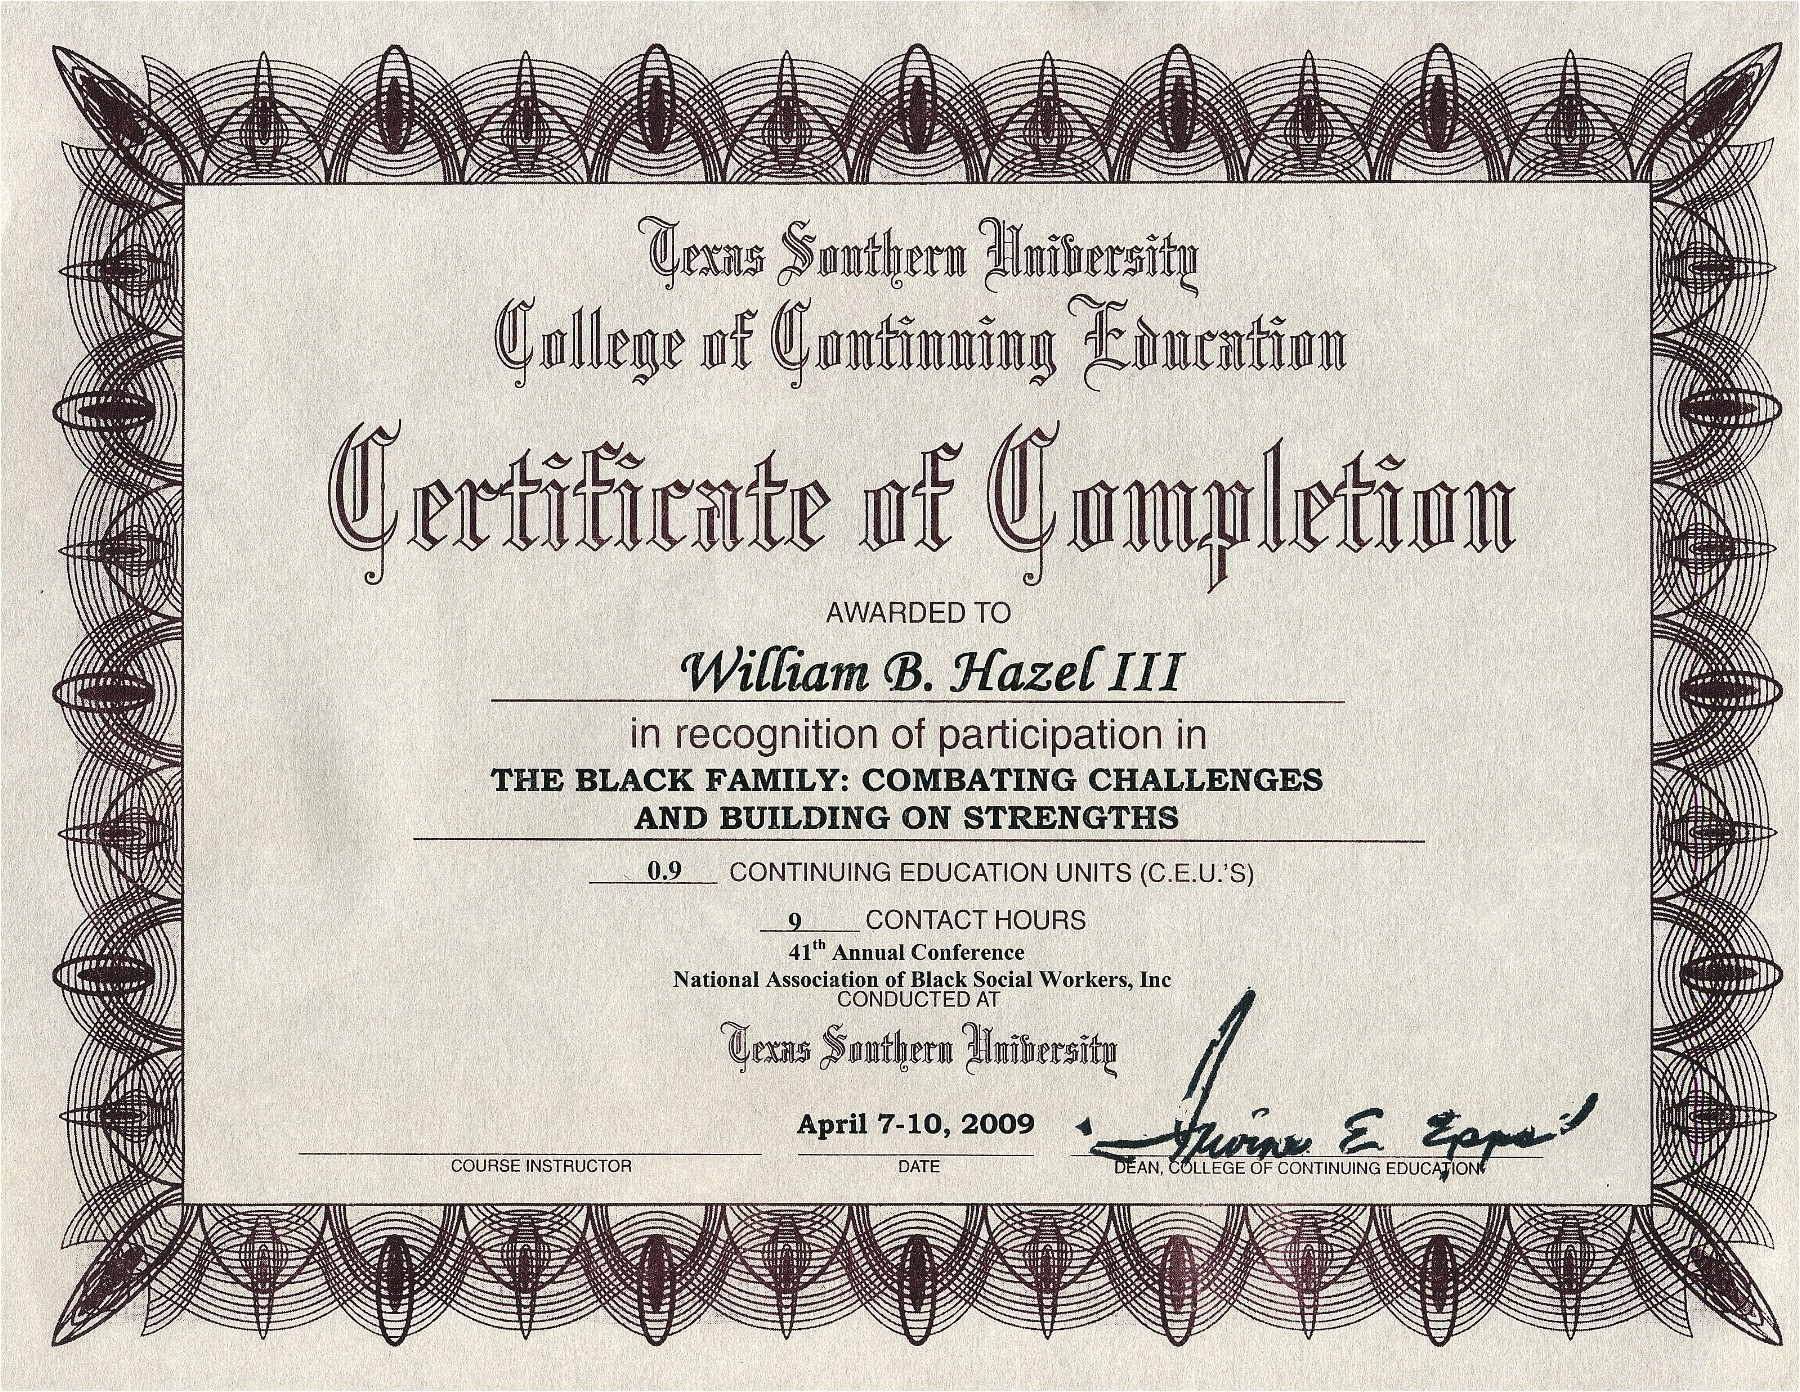 Free Anger Management Certificate Of Completion Template College University Texas southern University College Of